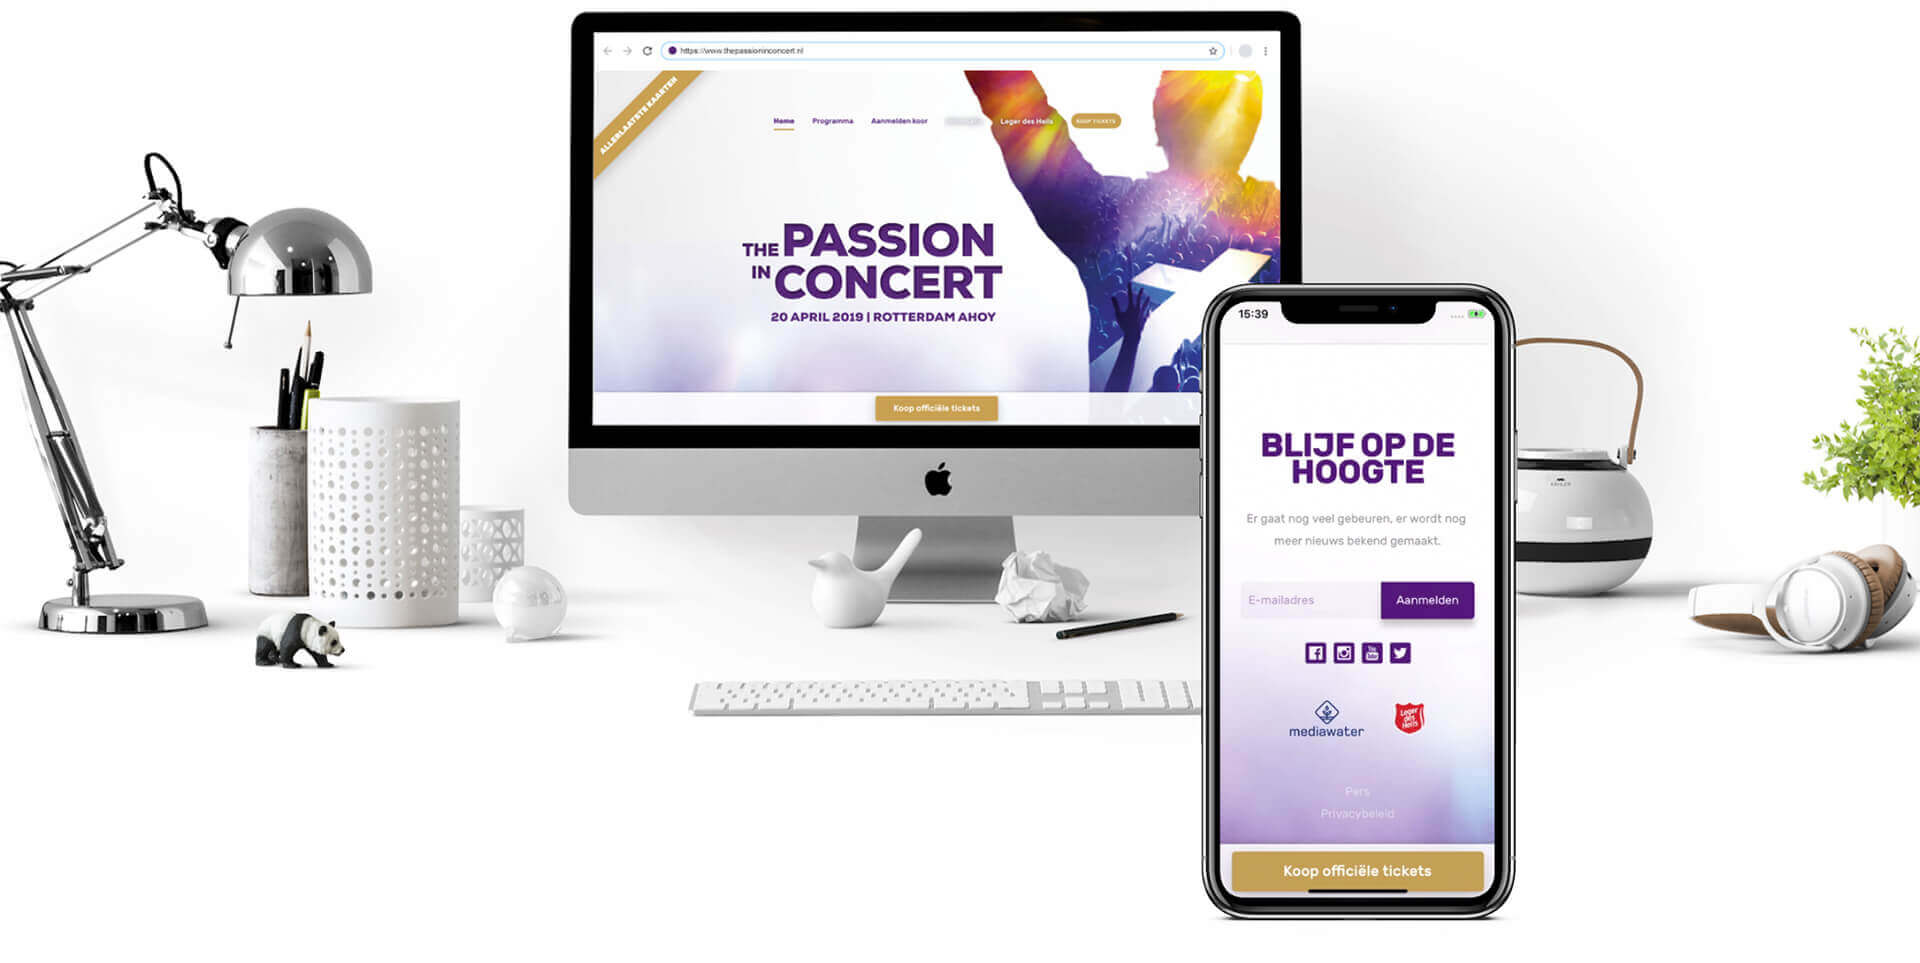 The Passion in Concert website